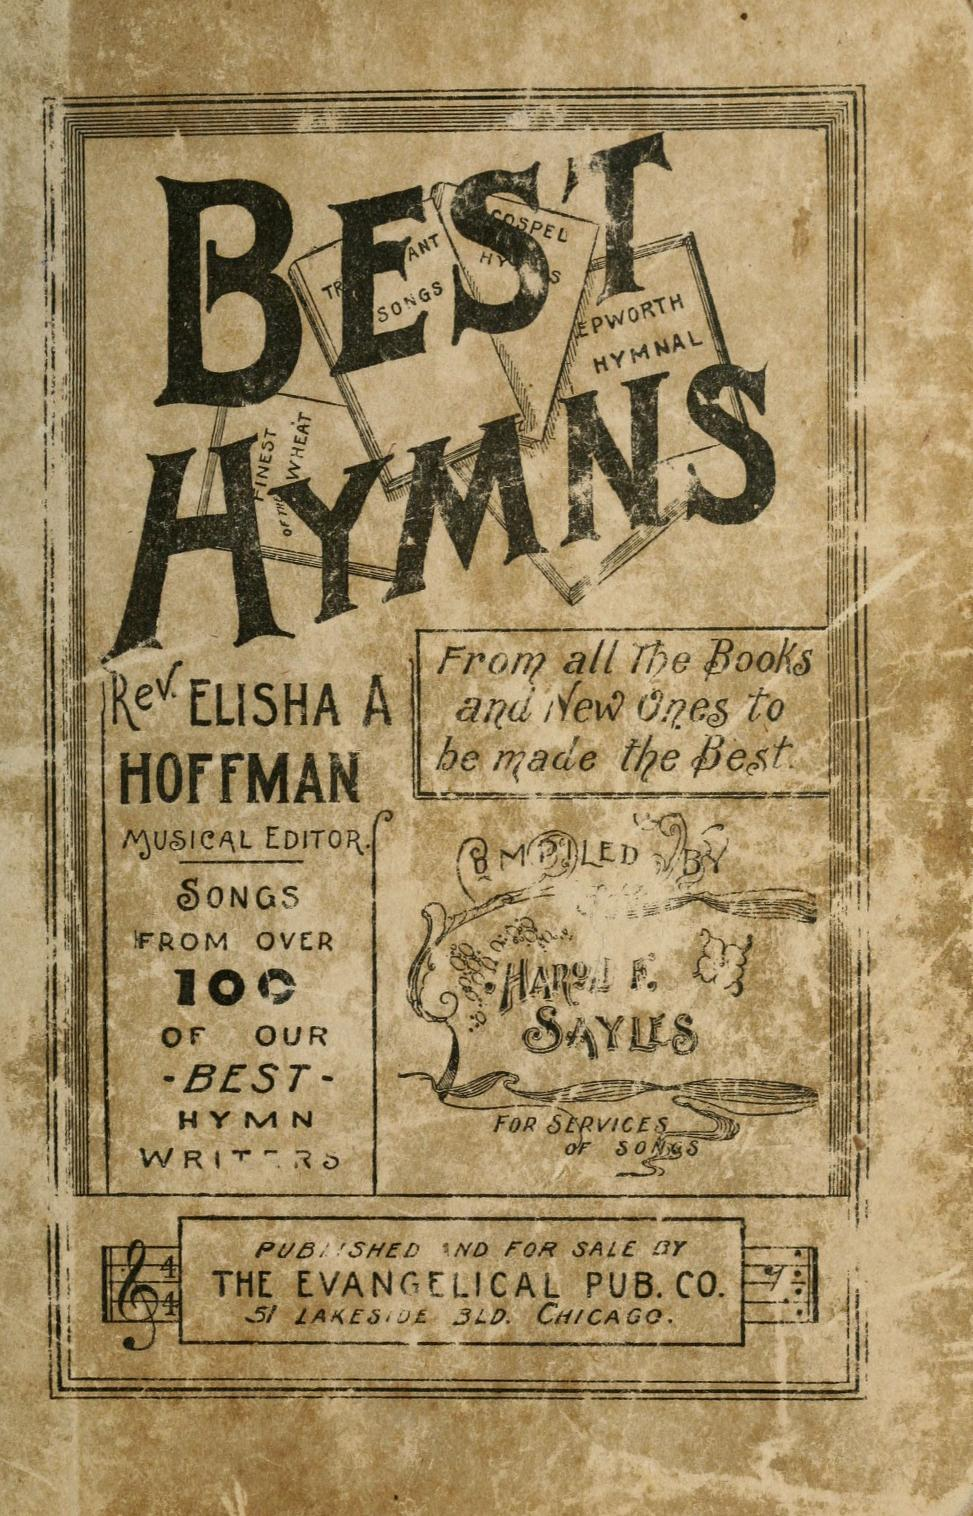 best hymns from all the books and new ones to be made the best best hymns from all the books and new ones to be made the best selections from over one hundred of our best hymn writers